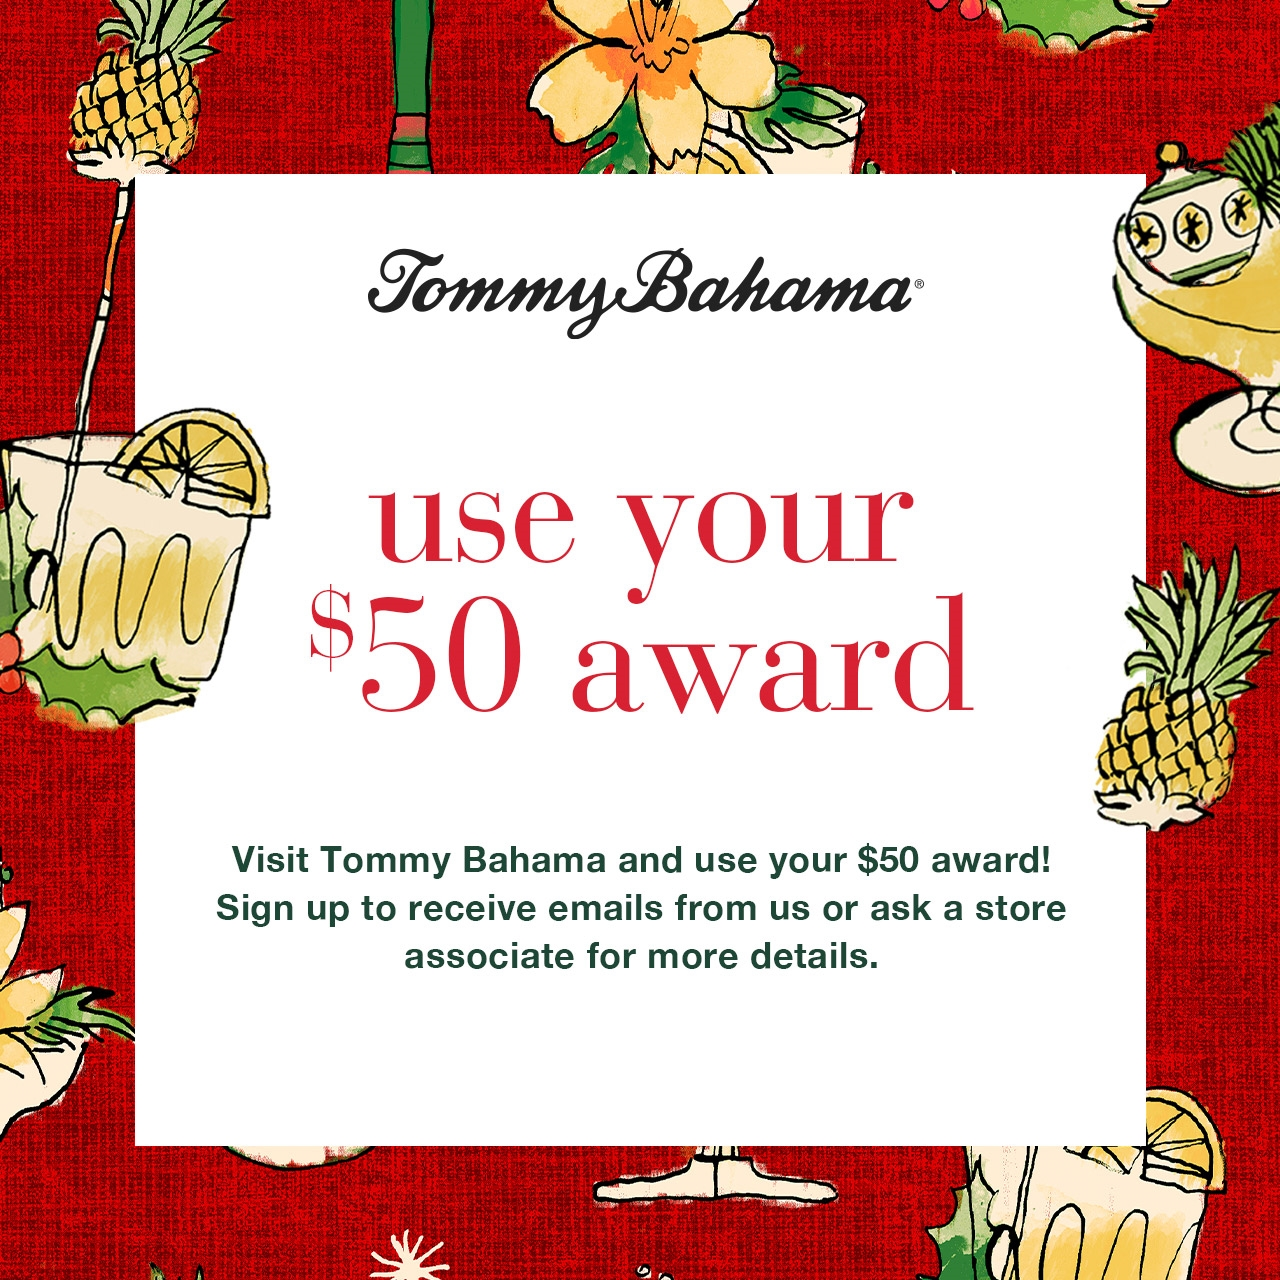 USE YOUR $50 AWARD from Tommy Bahama